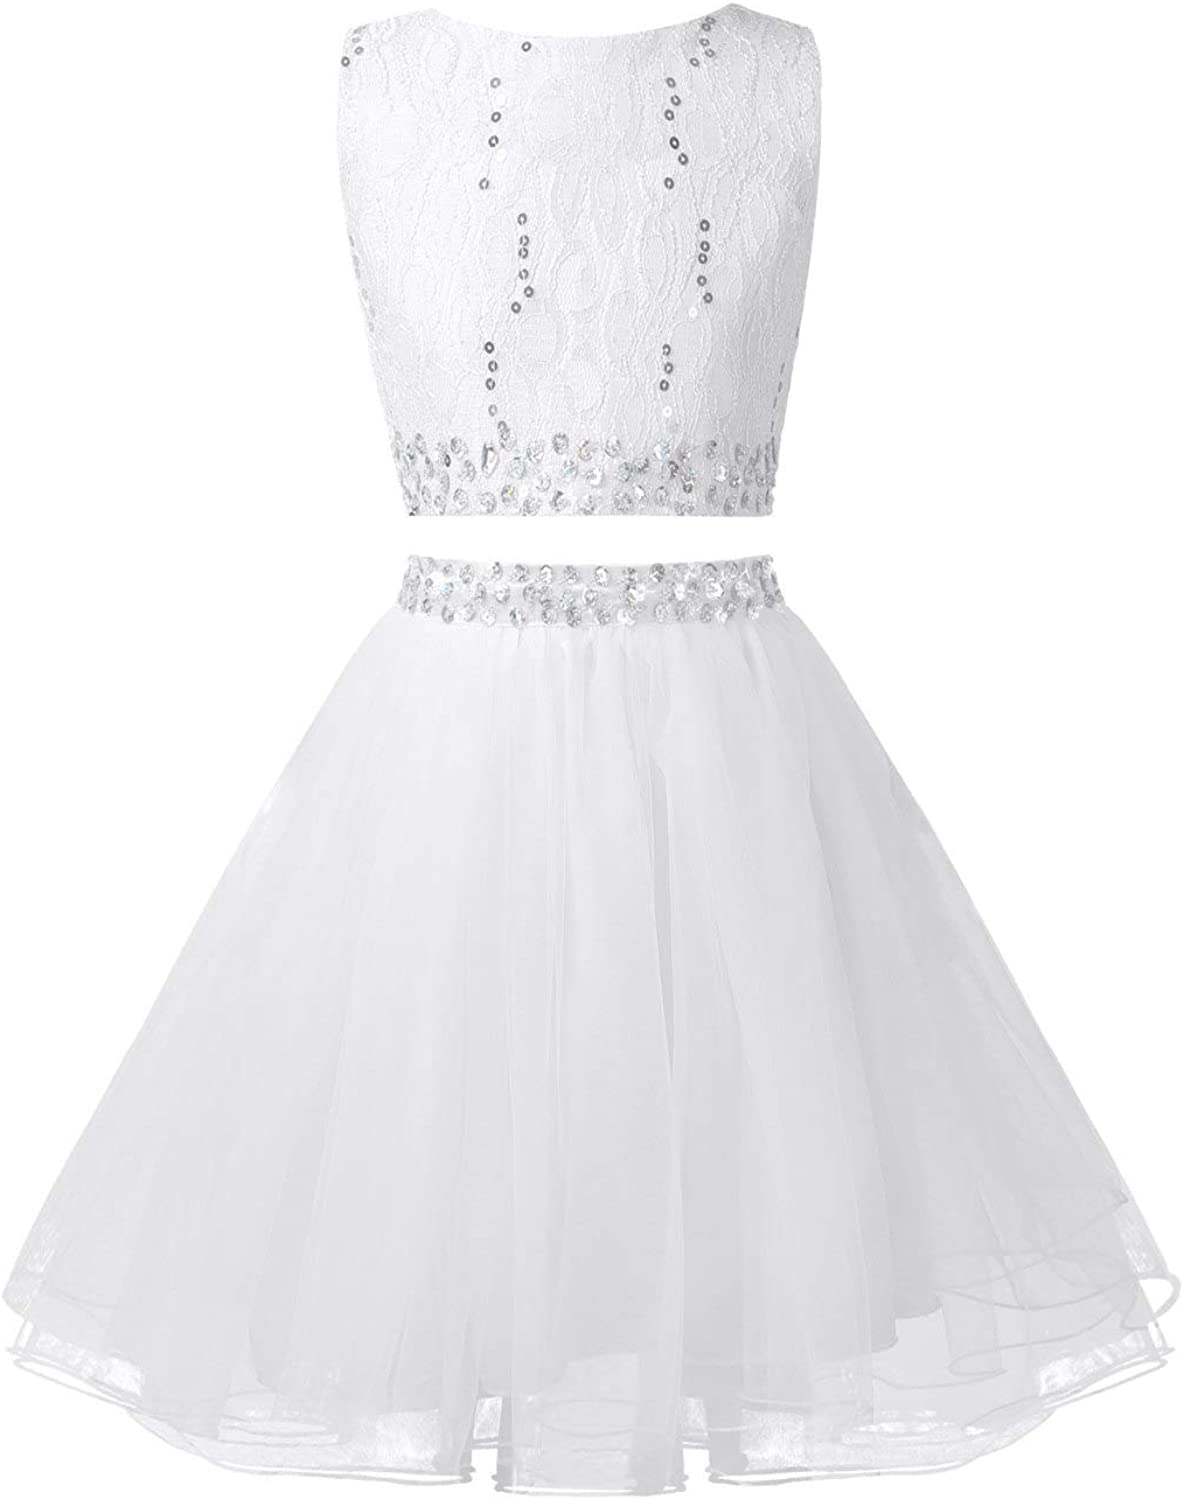 Jelory Junior Girls' Kids' 2 Piece Beaded Lace Wedding Party Flower Bridesmaid Prom Ball Gown Dress